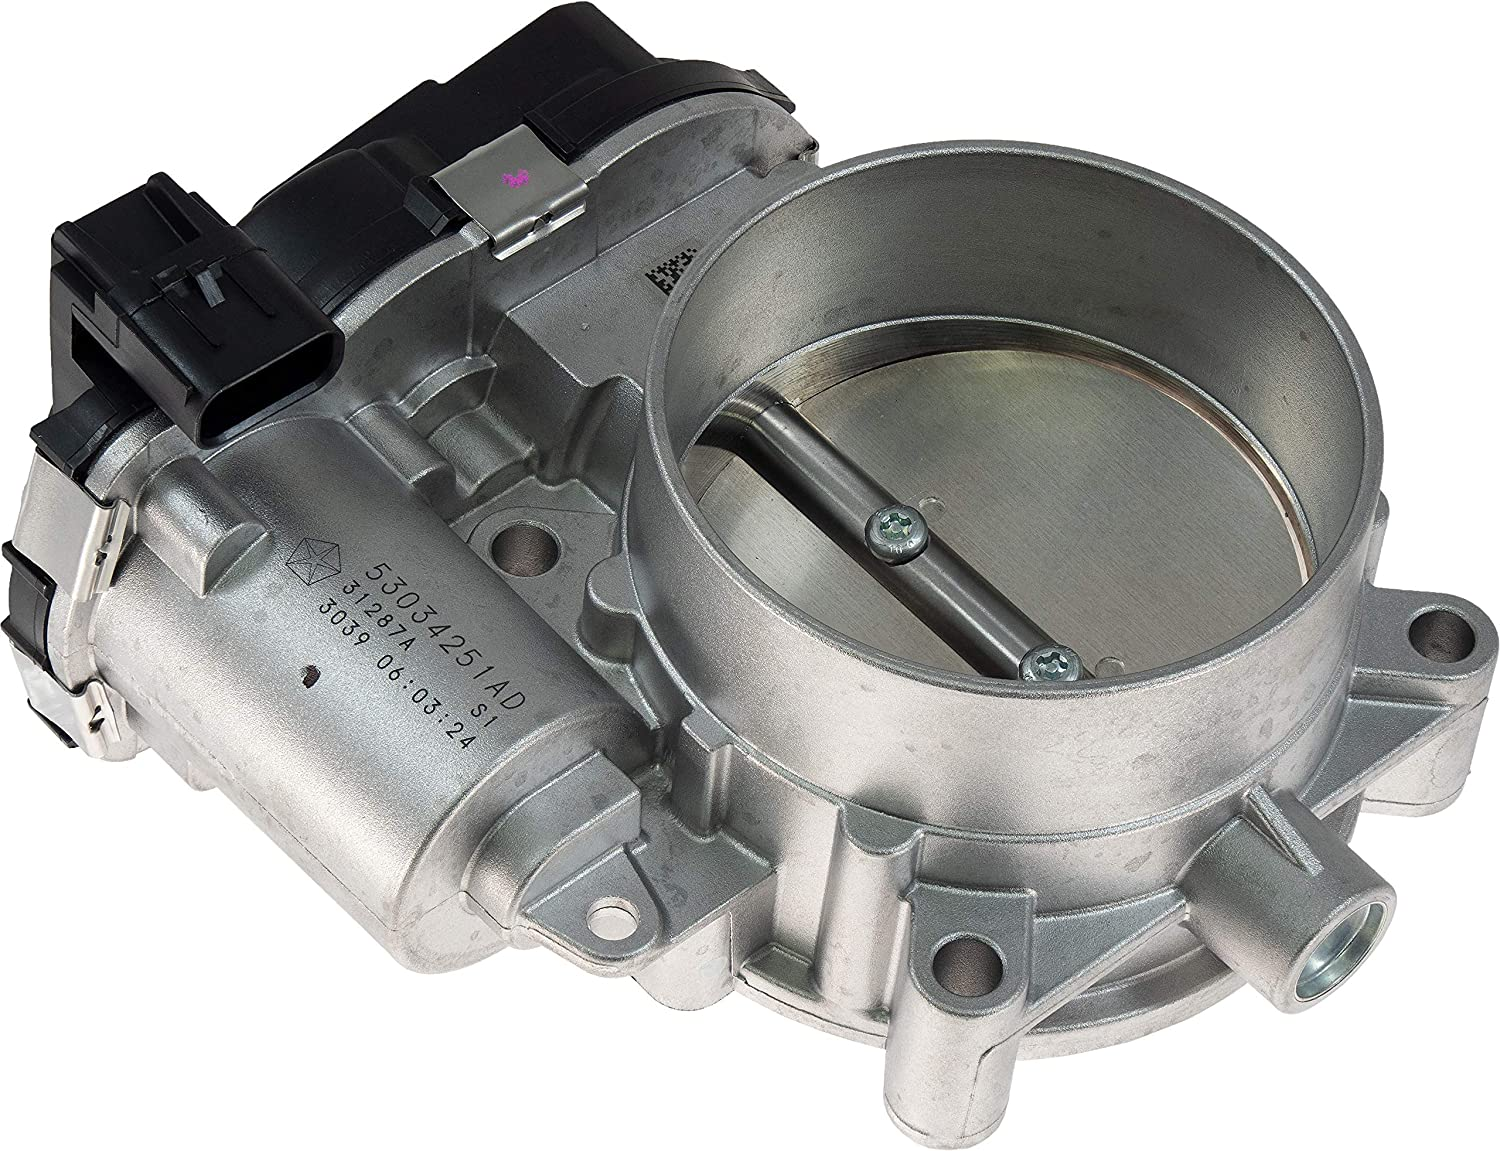 APDTY 143102 Throttle Body Assembly Fits Select 5.7L Hemi or 6.4L Engine